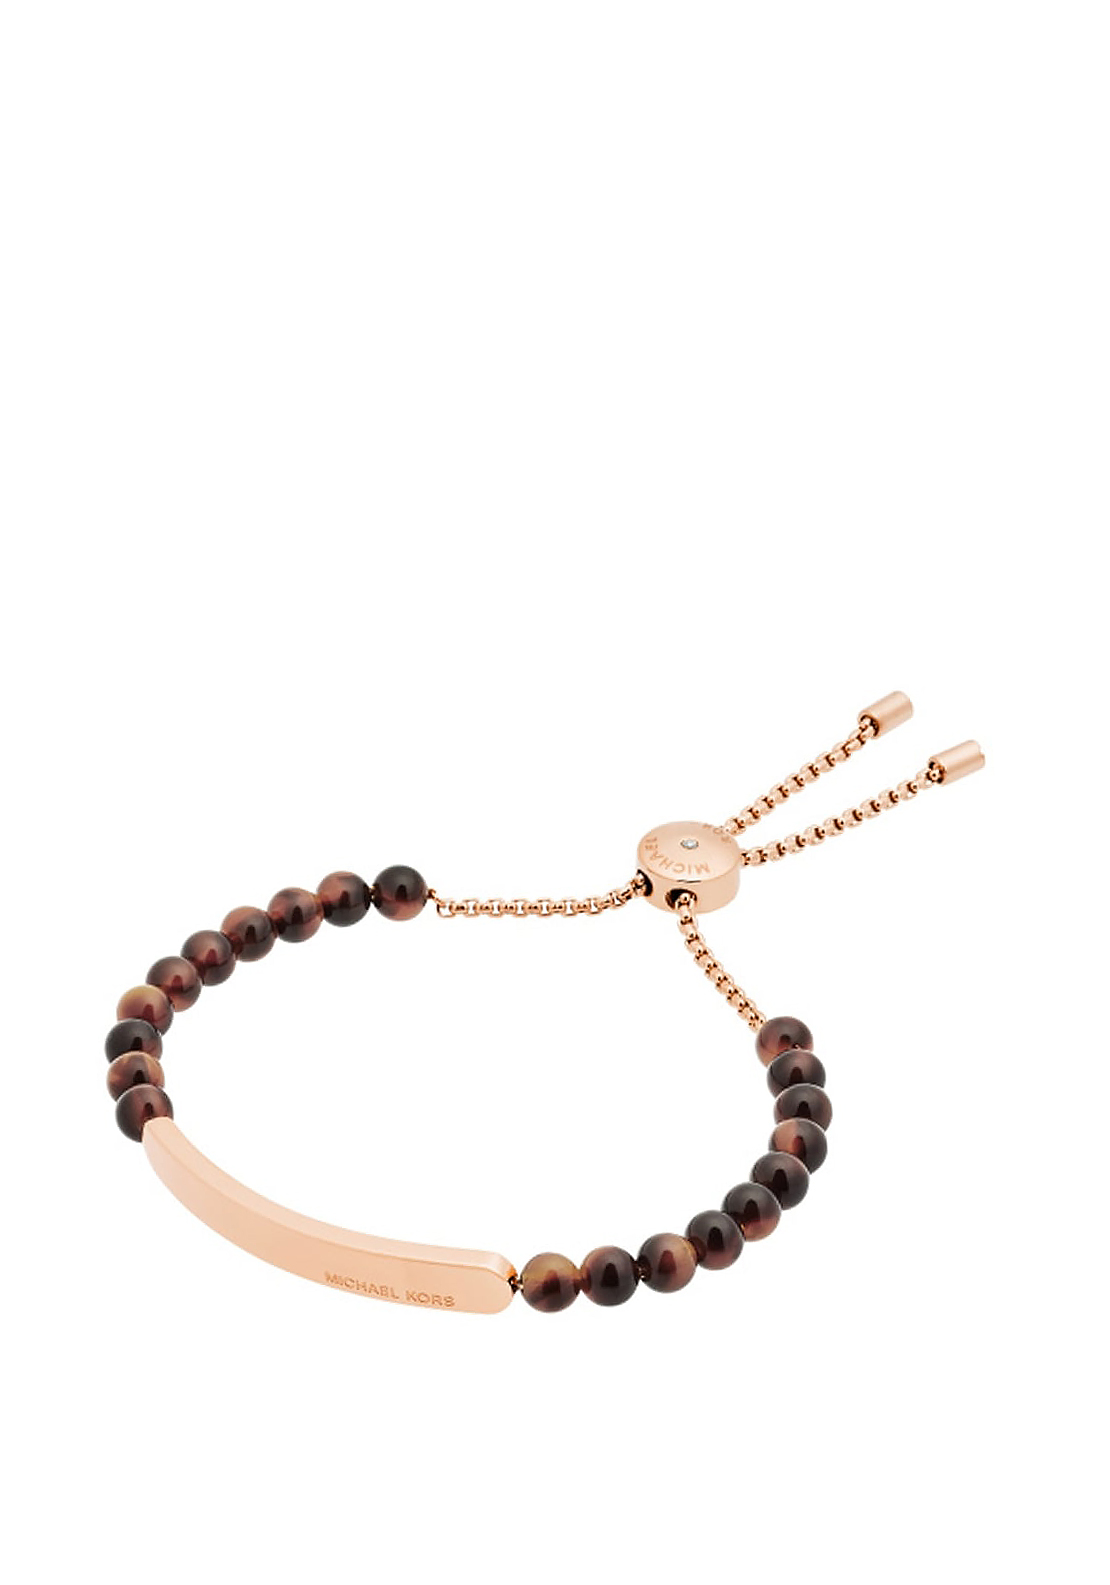 Michael Kors Tortoise Acetate Beaded Toggle Bracelet, Rose Gold